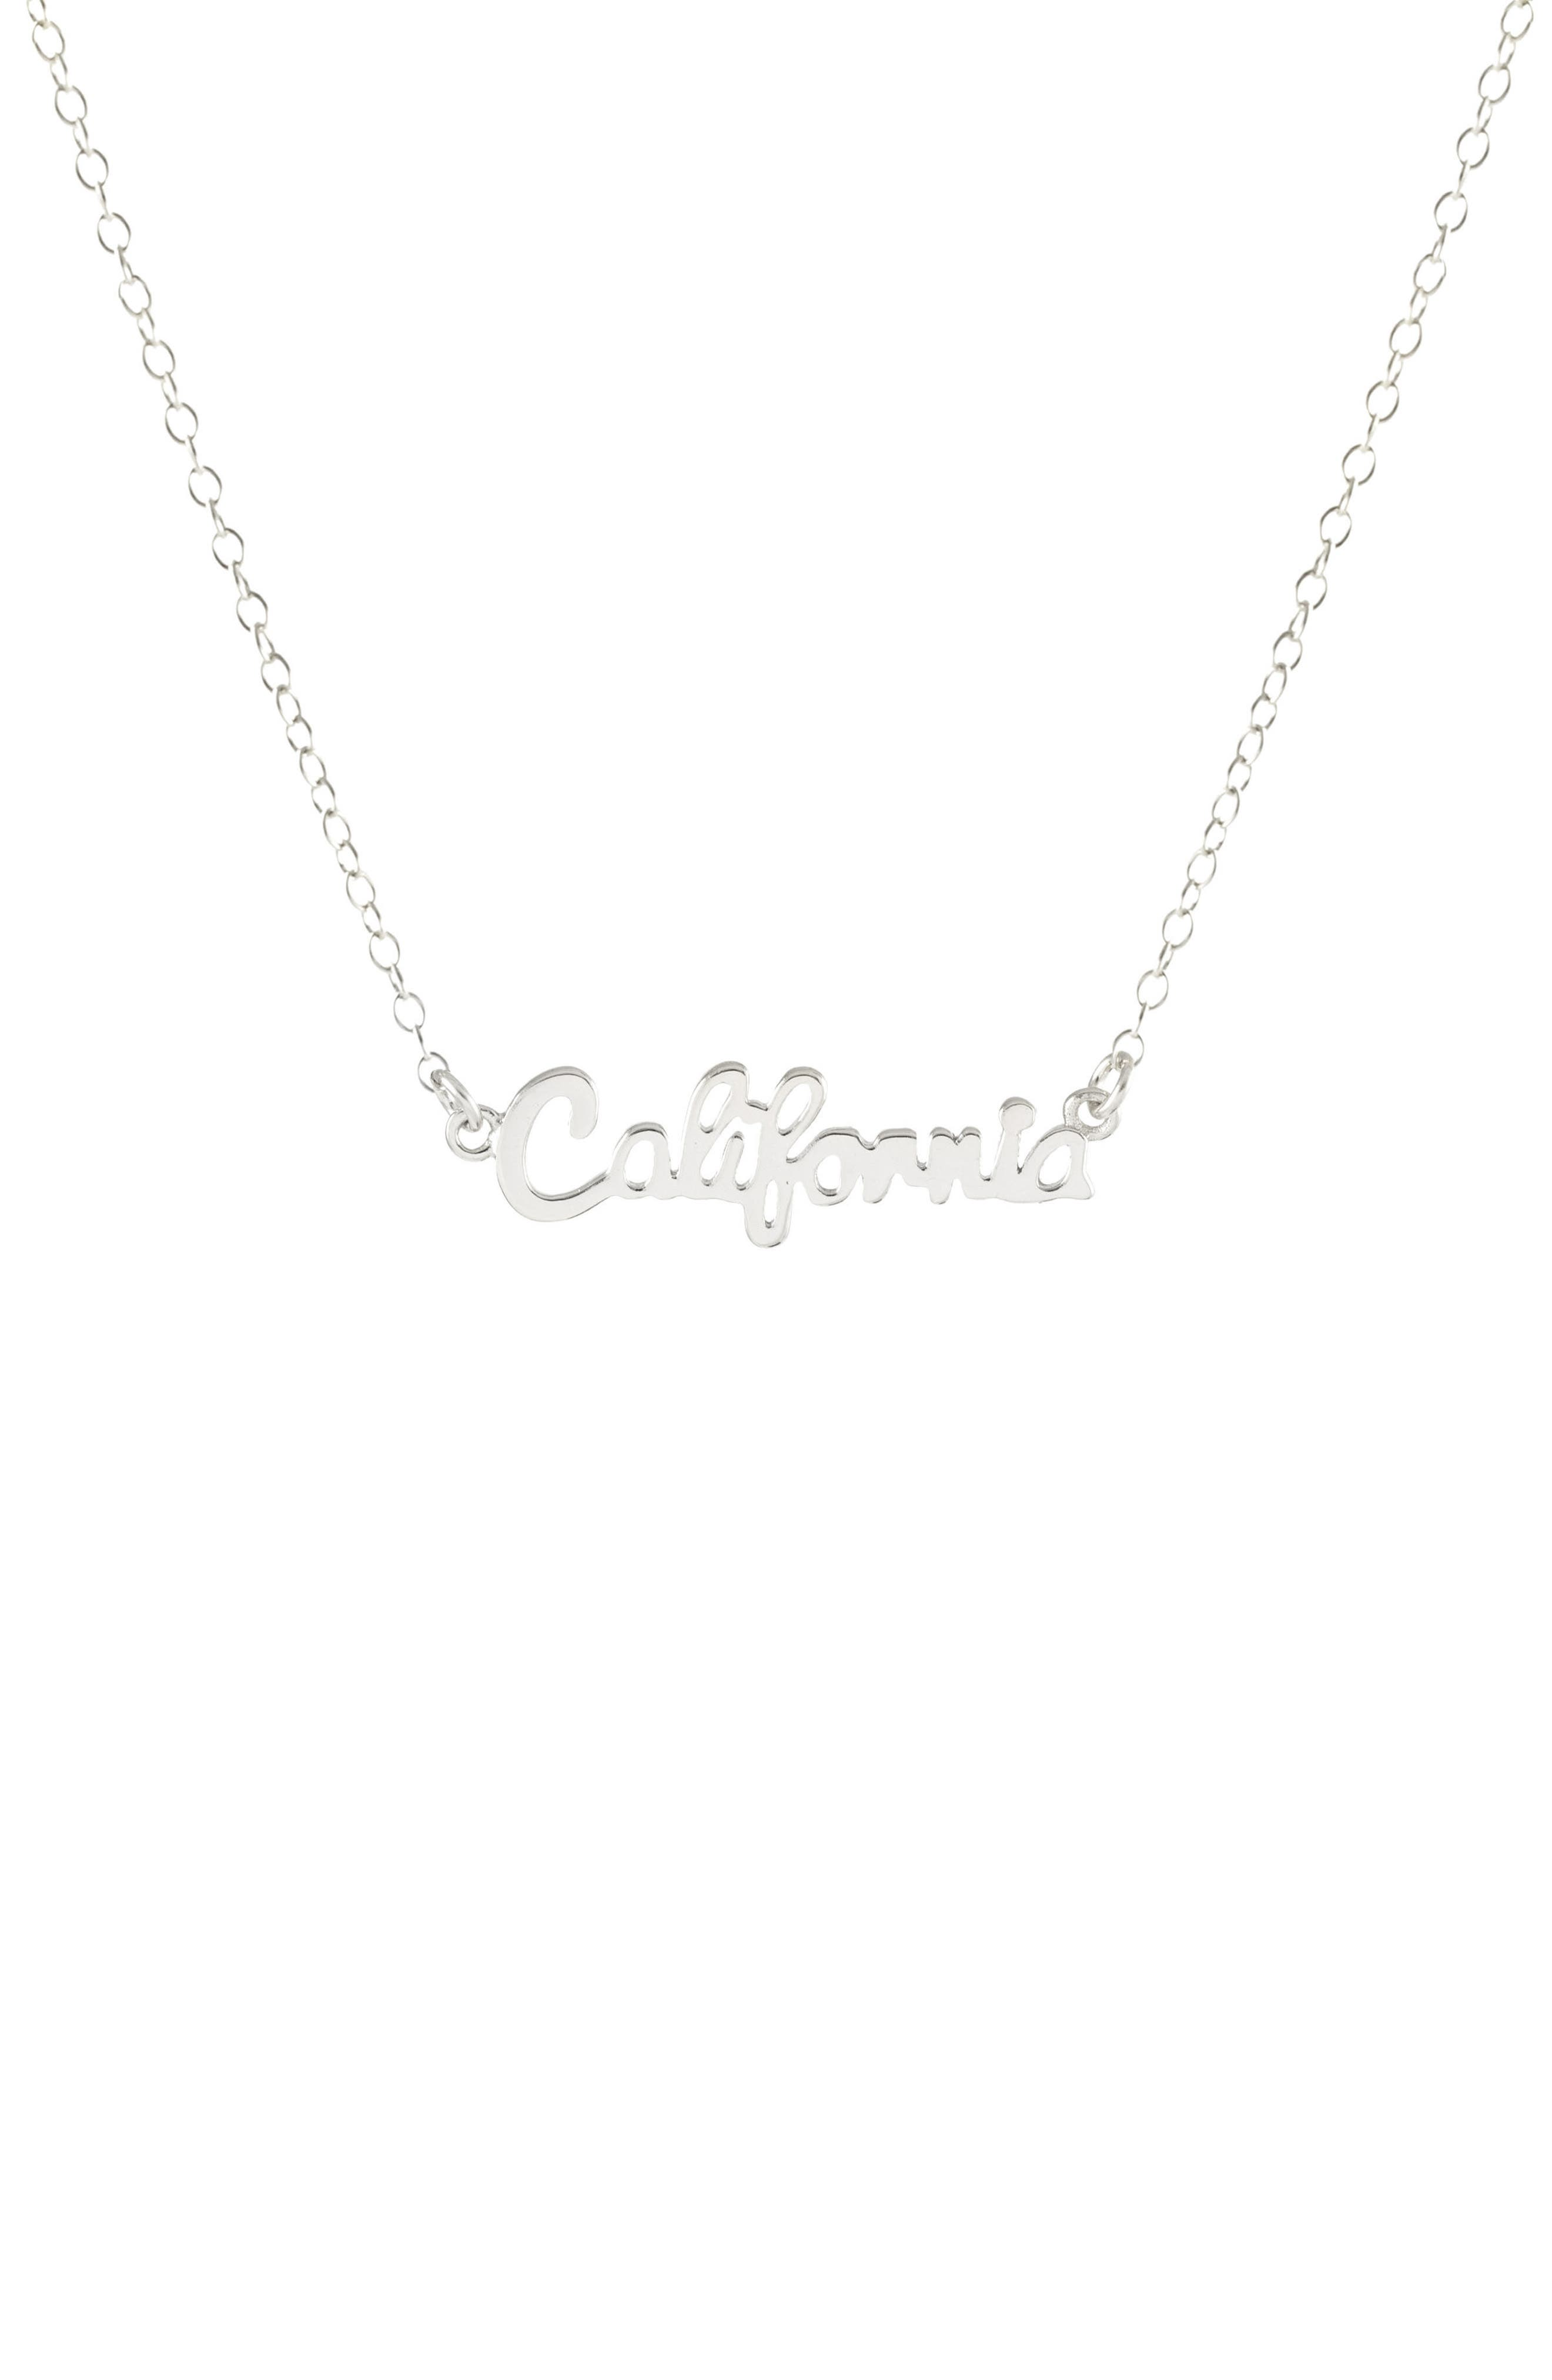 State Script Charm Necklace,                             Main thumbnail 1, color,                             CALIFORNIA - SILVER